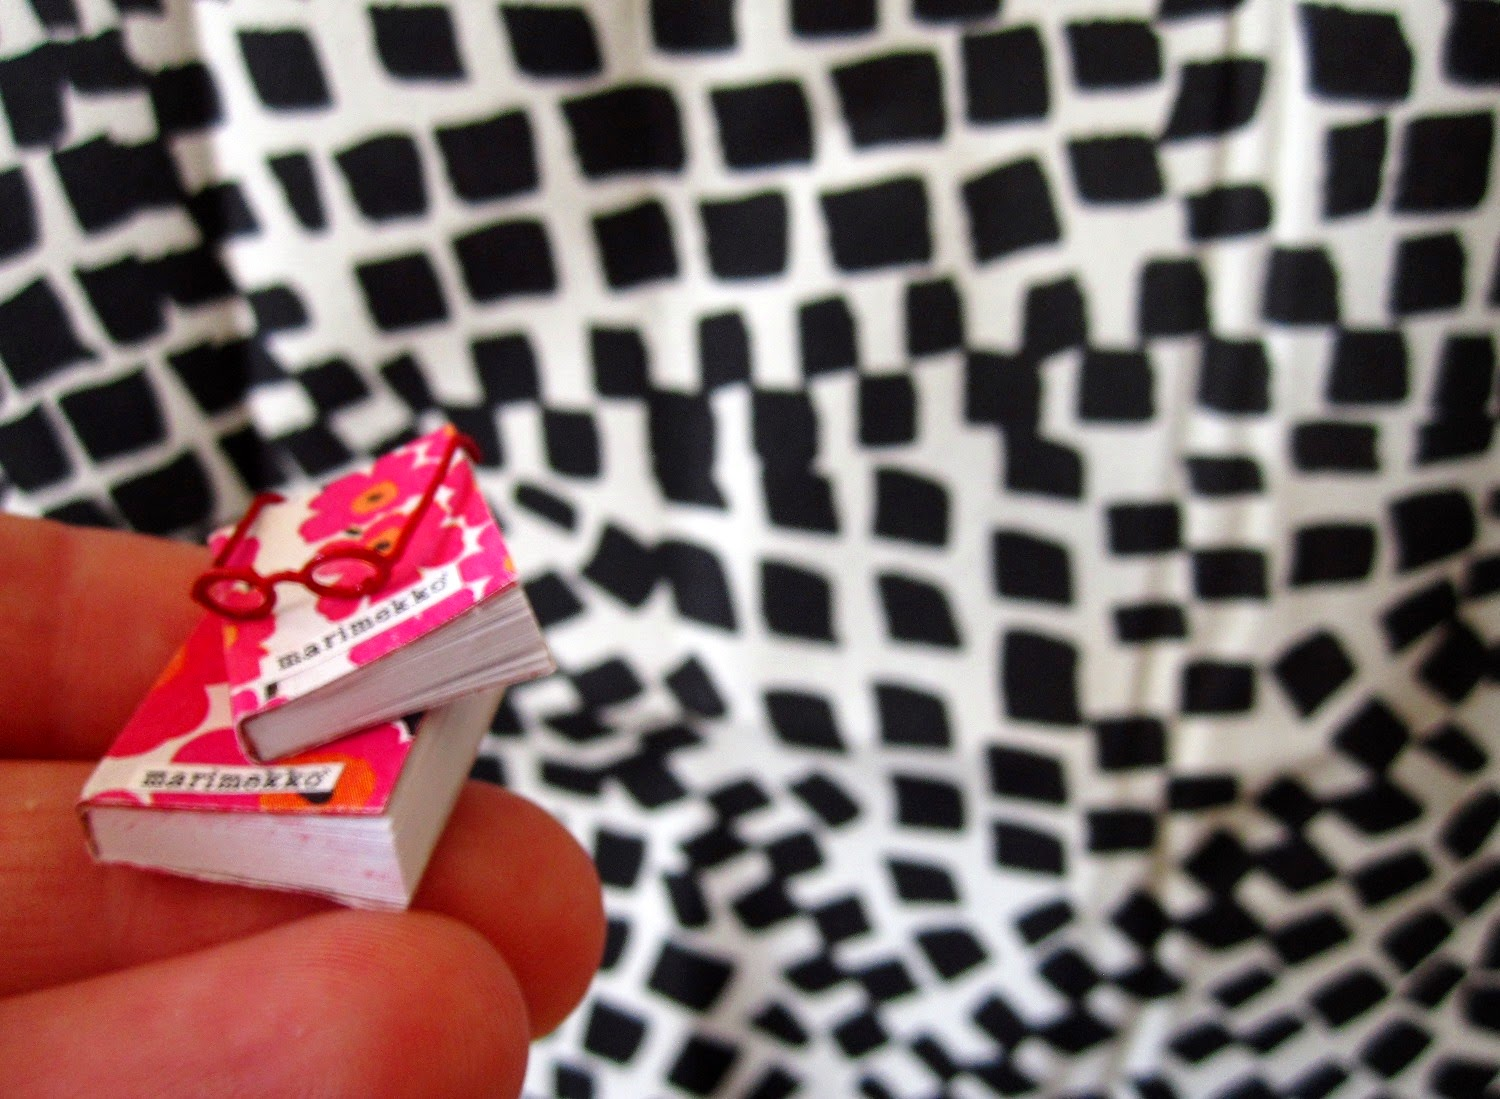 Two miniature Marimekko books and a pair of miniature red reading glasses balanced on fingertips.